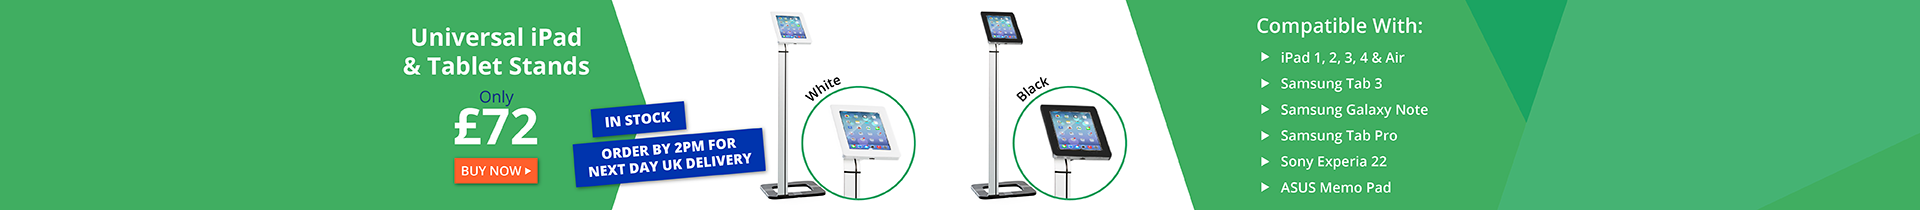 iPad and Tablet Floor Stands